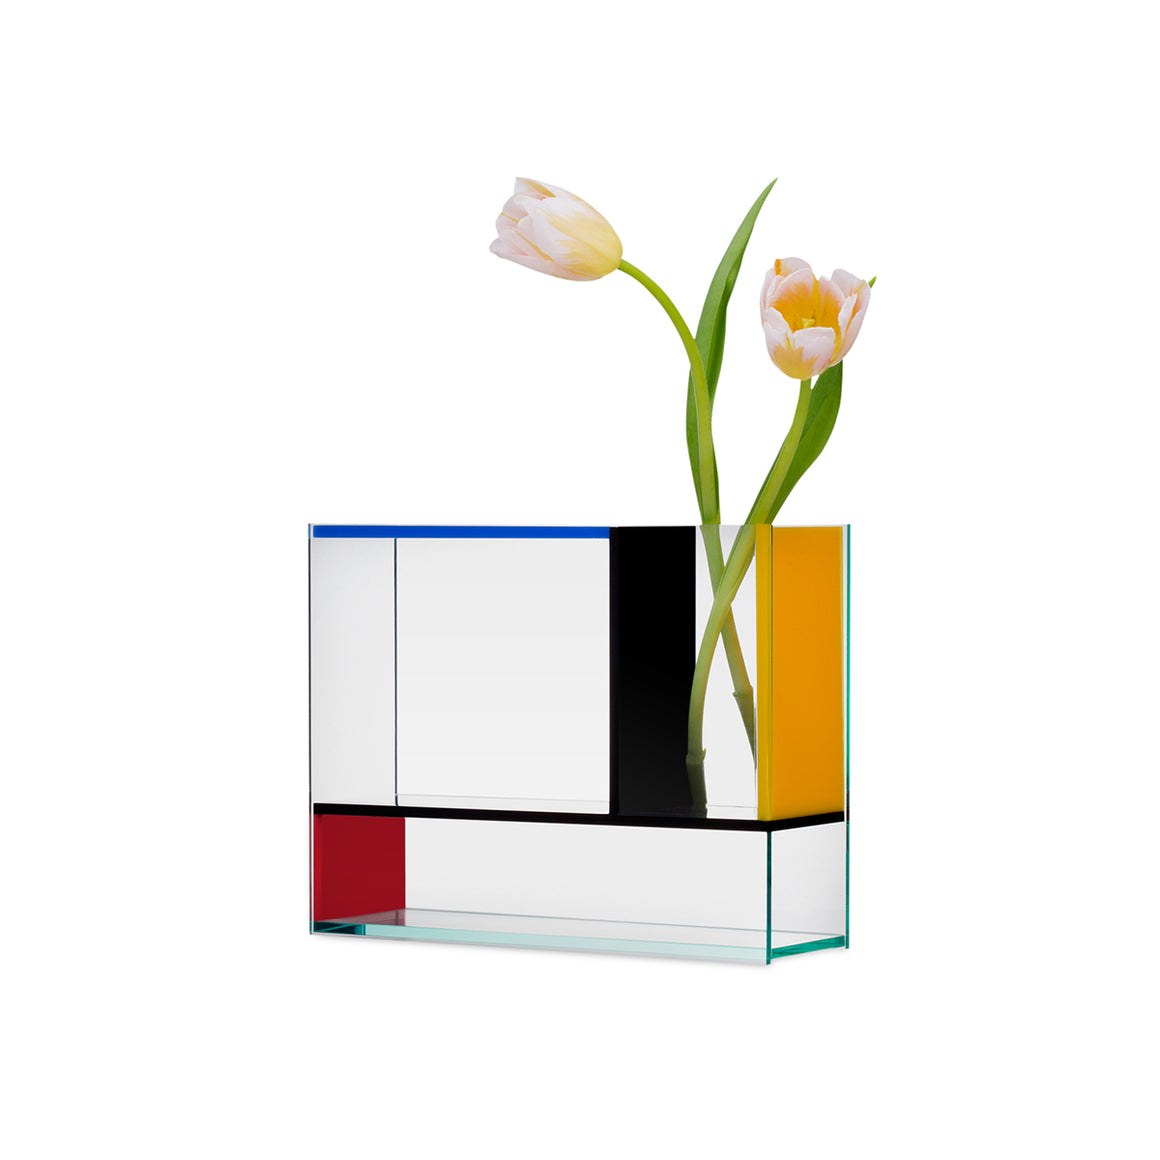 An Acrylic vase inspired by the works of the de Stijl art movement and the block colours of Mondrian. The Vase contains three different chambers and is made of acrylic sheets in clear, blue, red, yellow and black